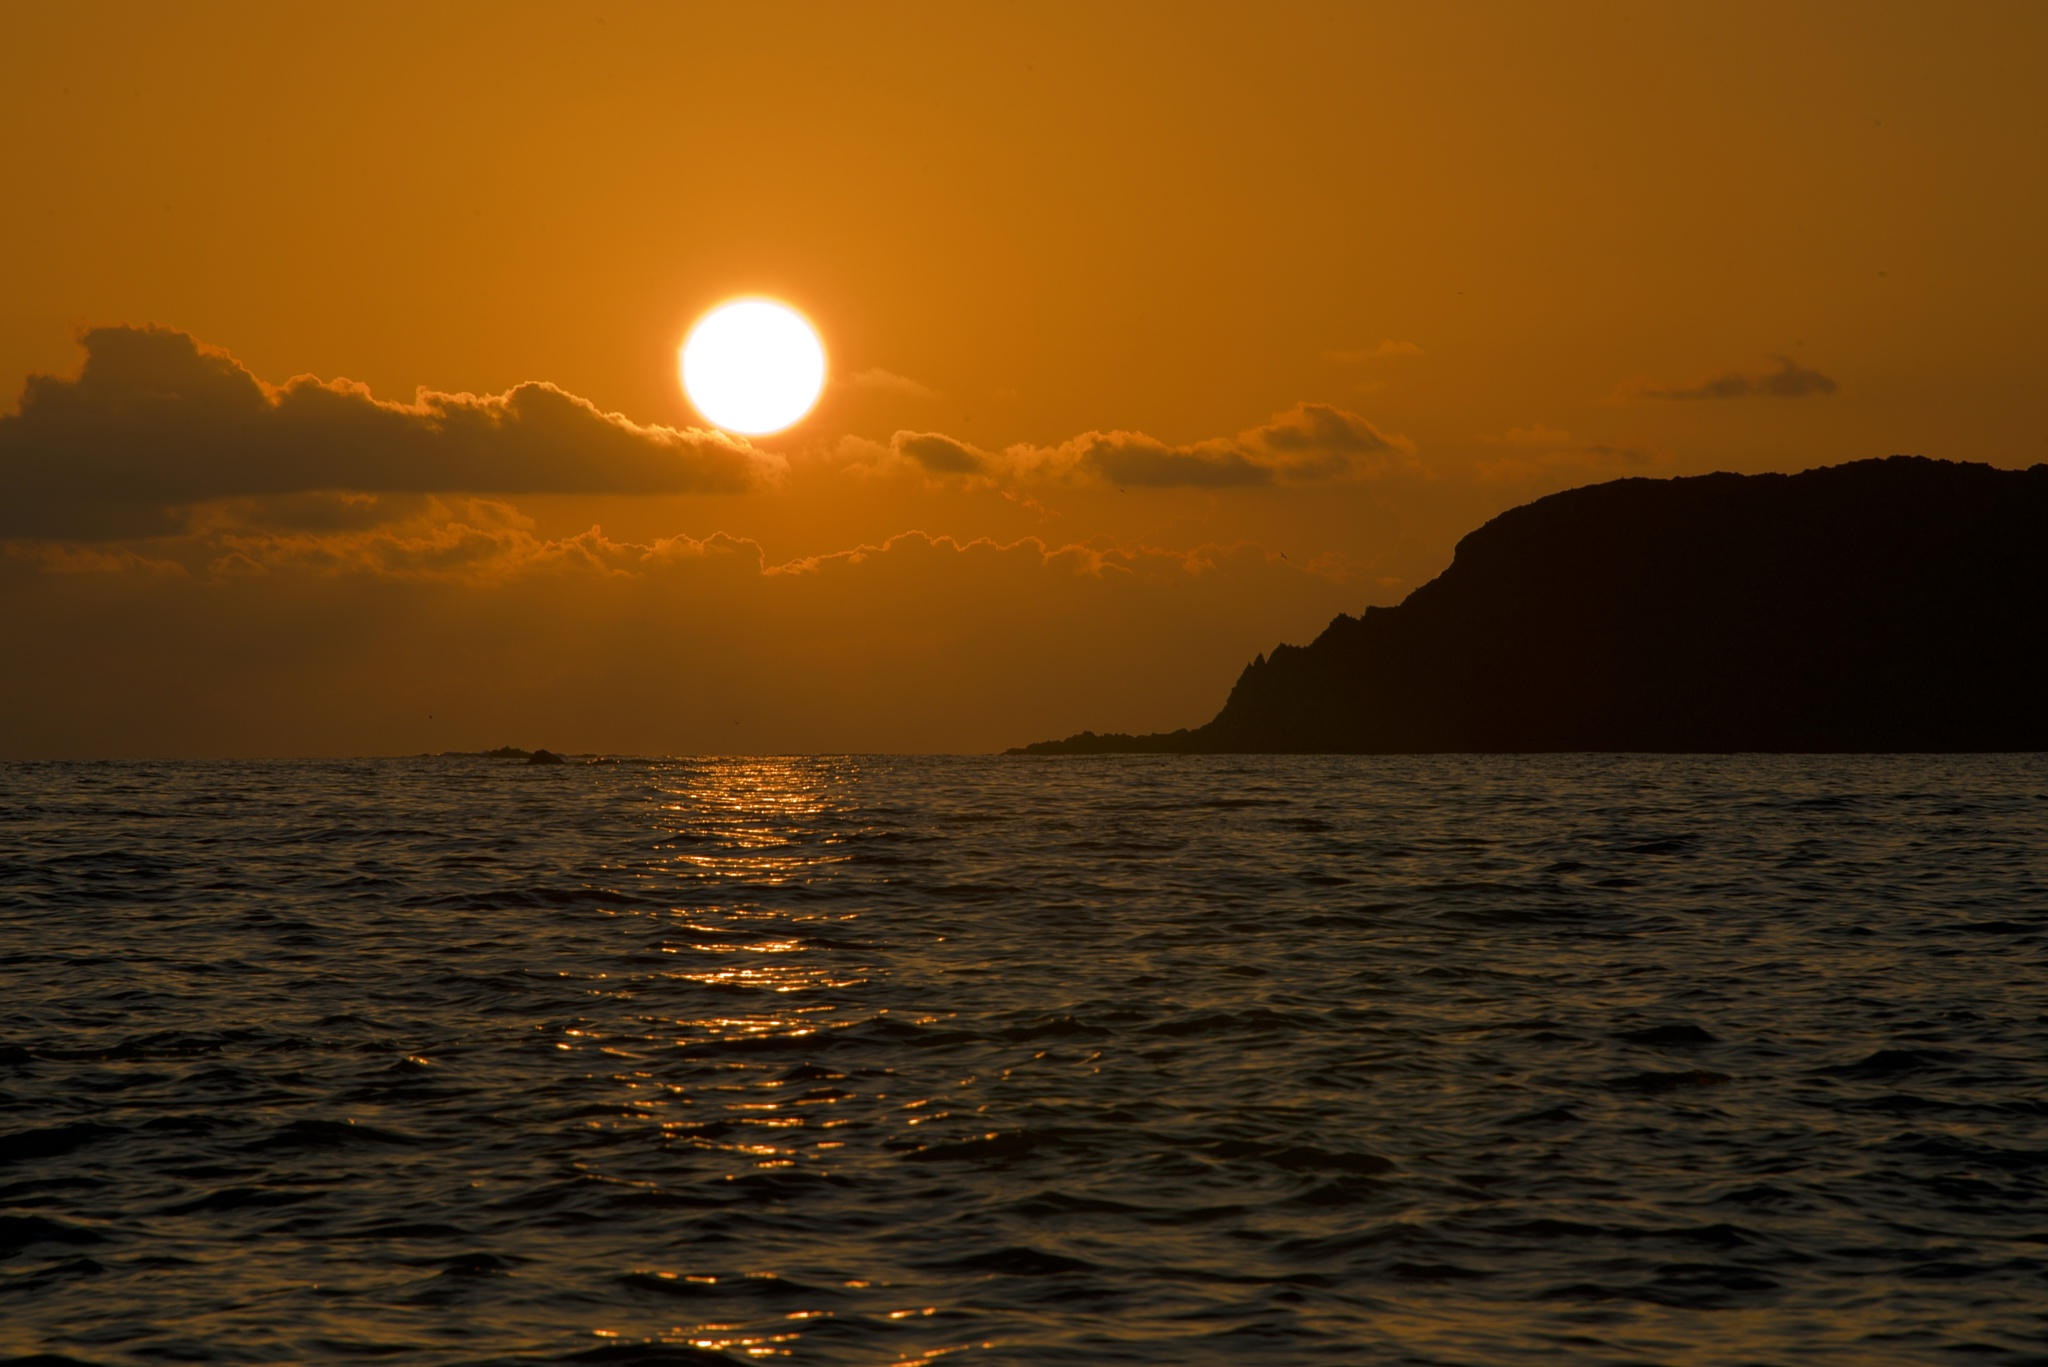 Costa Rican Sunset by Steve Aicinena